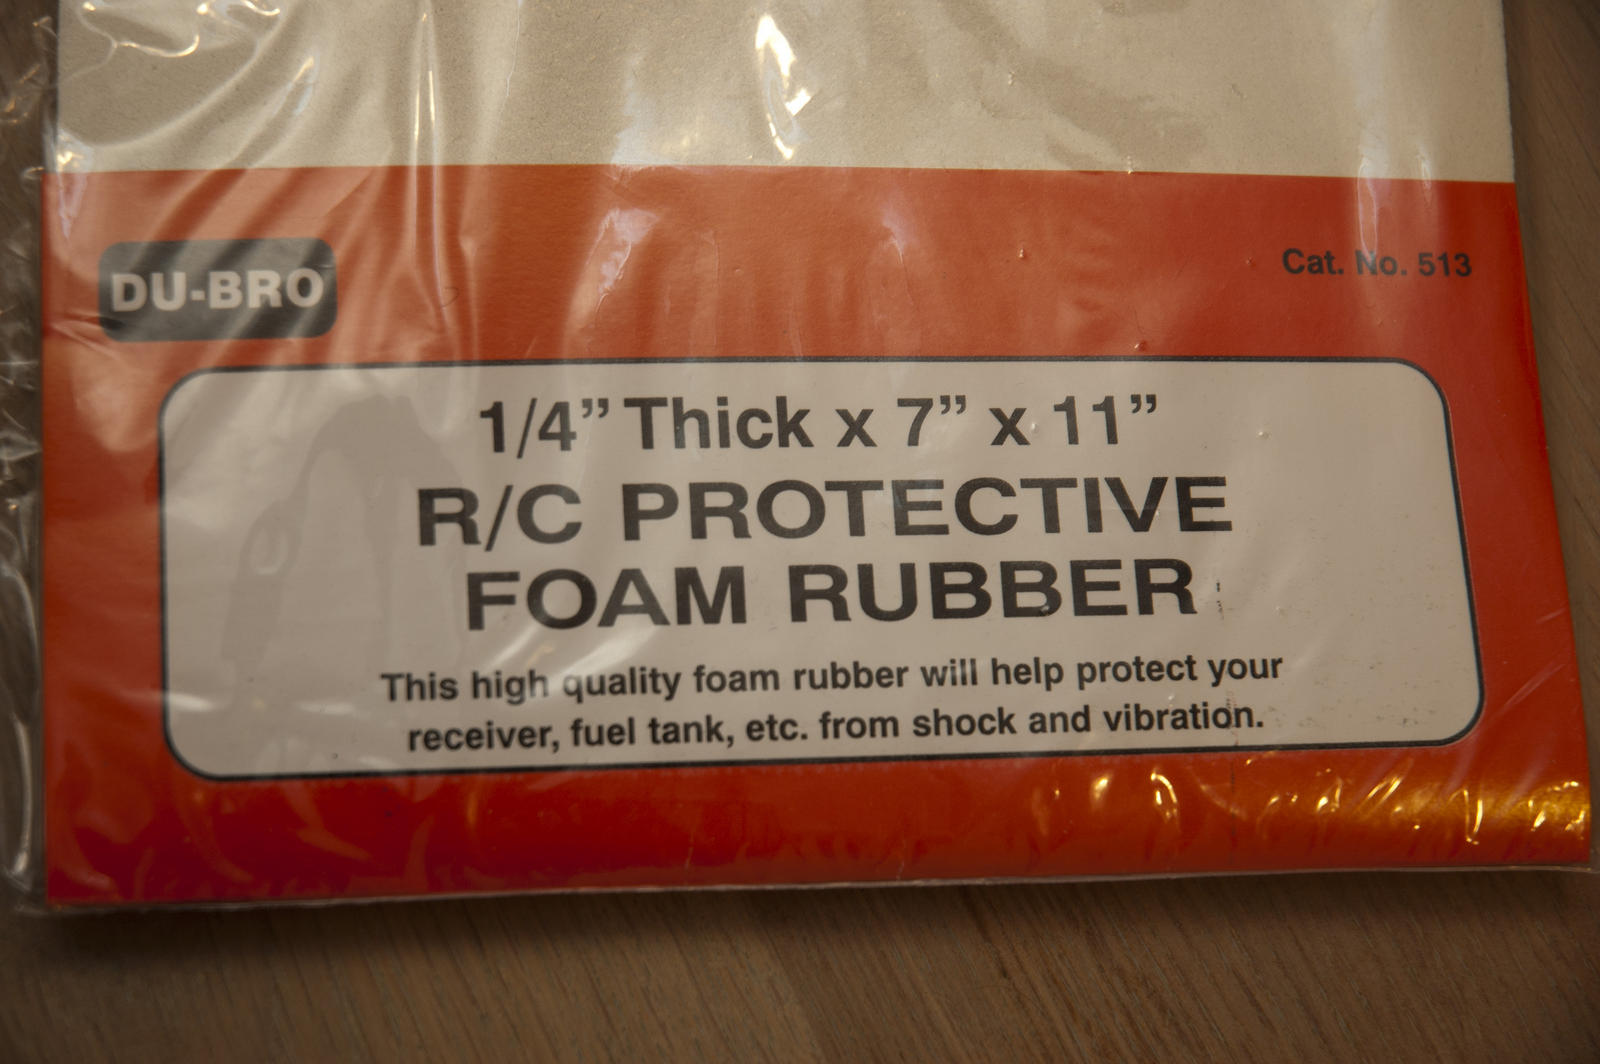 I have bought some R/C Protective Foam Rubber, to prevent vibrations